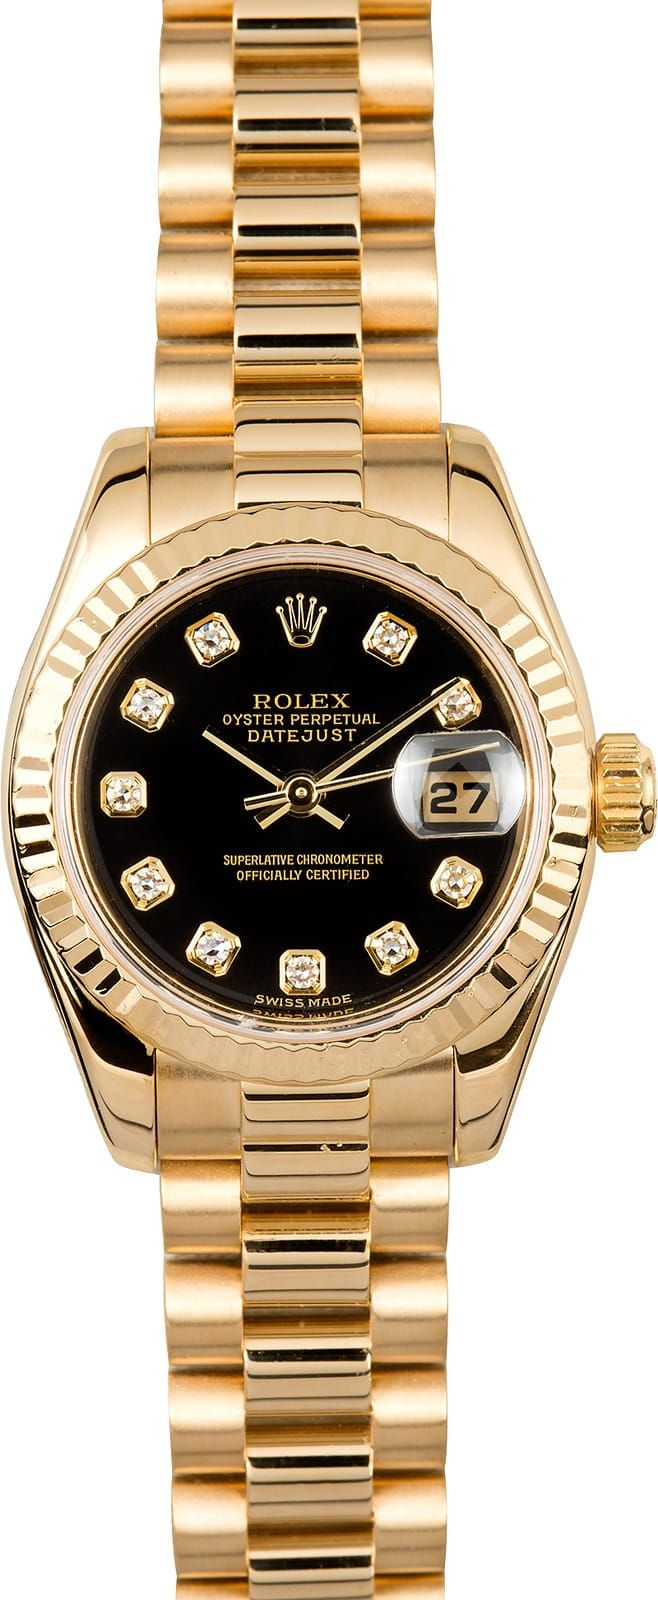 Manufacturer: Rolex   Model Name/Number: President 179178   Serial/Year: Y - 2002/2003   Grade: (What's This?) II   Gender: Ladies   Features: Automatic 2235 movement w/ date, Quickset, scratch-resistant sapphire crystal, waterproof screw-down crown   Case: 18k yellow gold w/ fluted bezel (26mm)   Dial: Black Diamond   Bracelet: 18k Yellow Gold Presidential w/ hidden crown clasp   Box & Papers: Original Rolex box and papers   Comments: This Ladies Rolex Datejust comes w/ Bob's